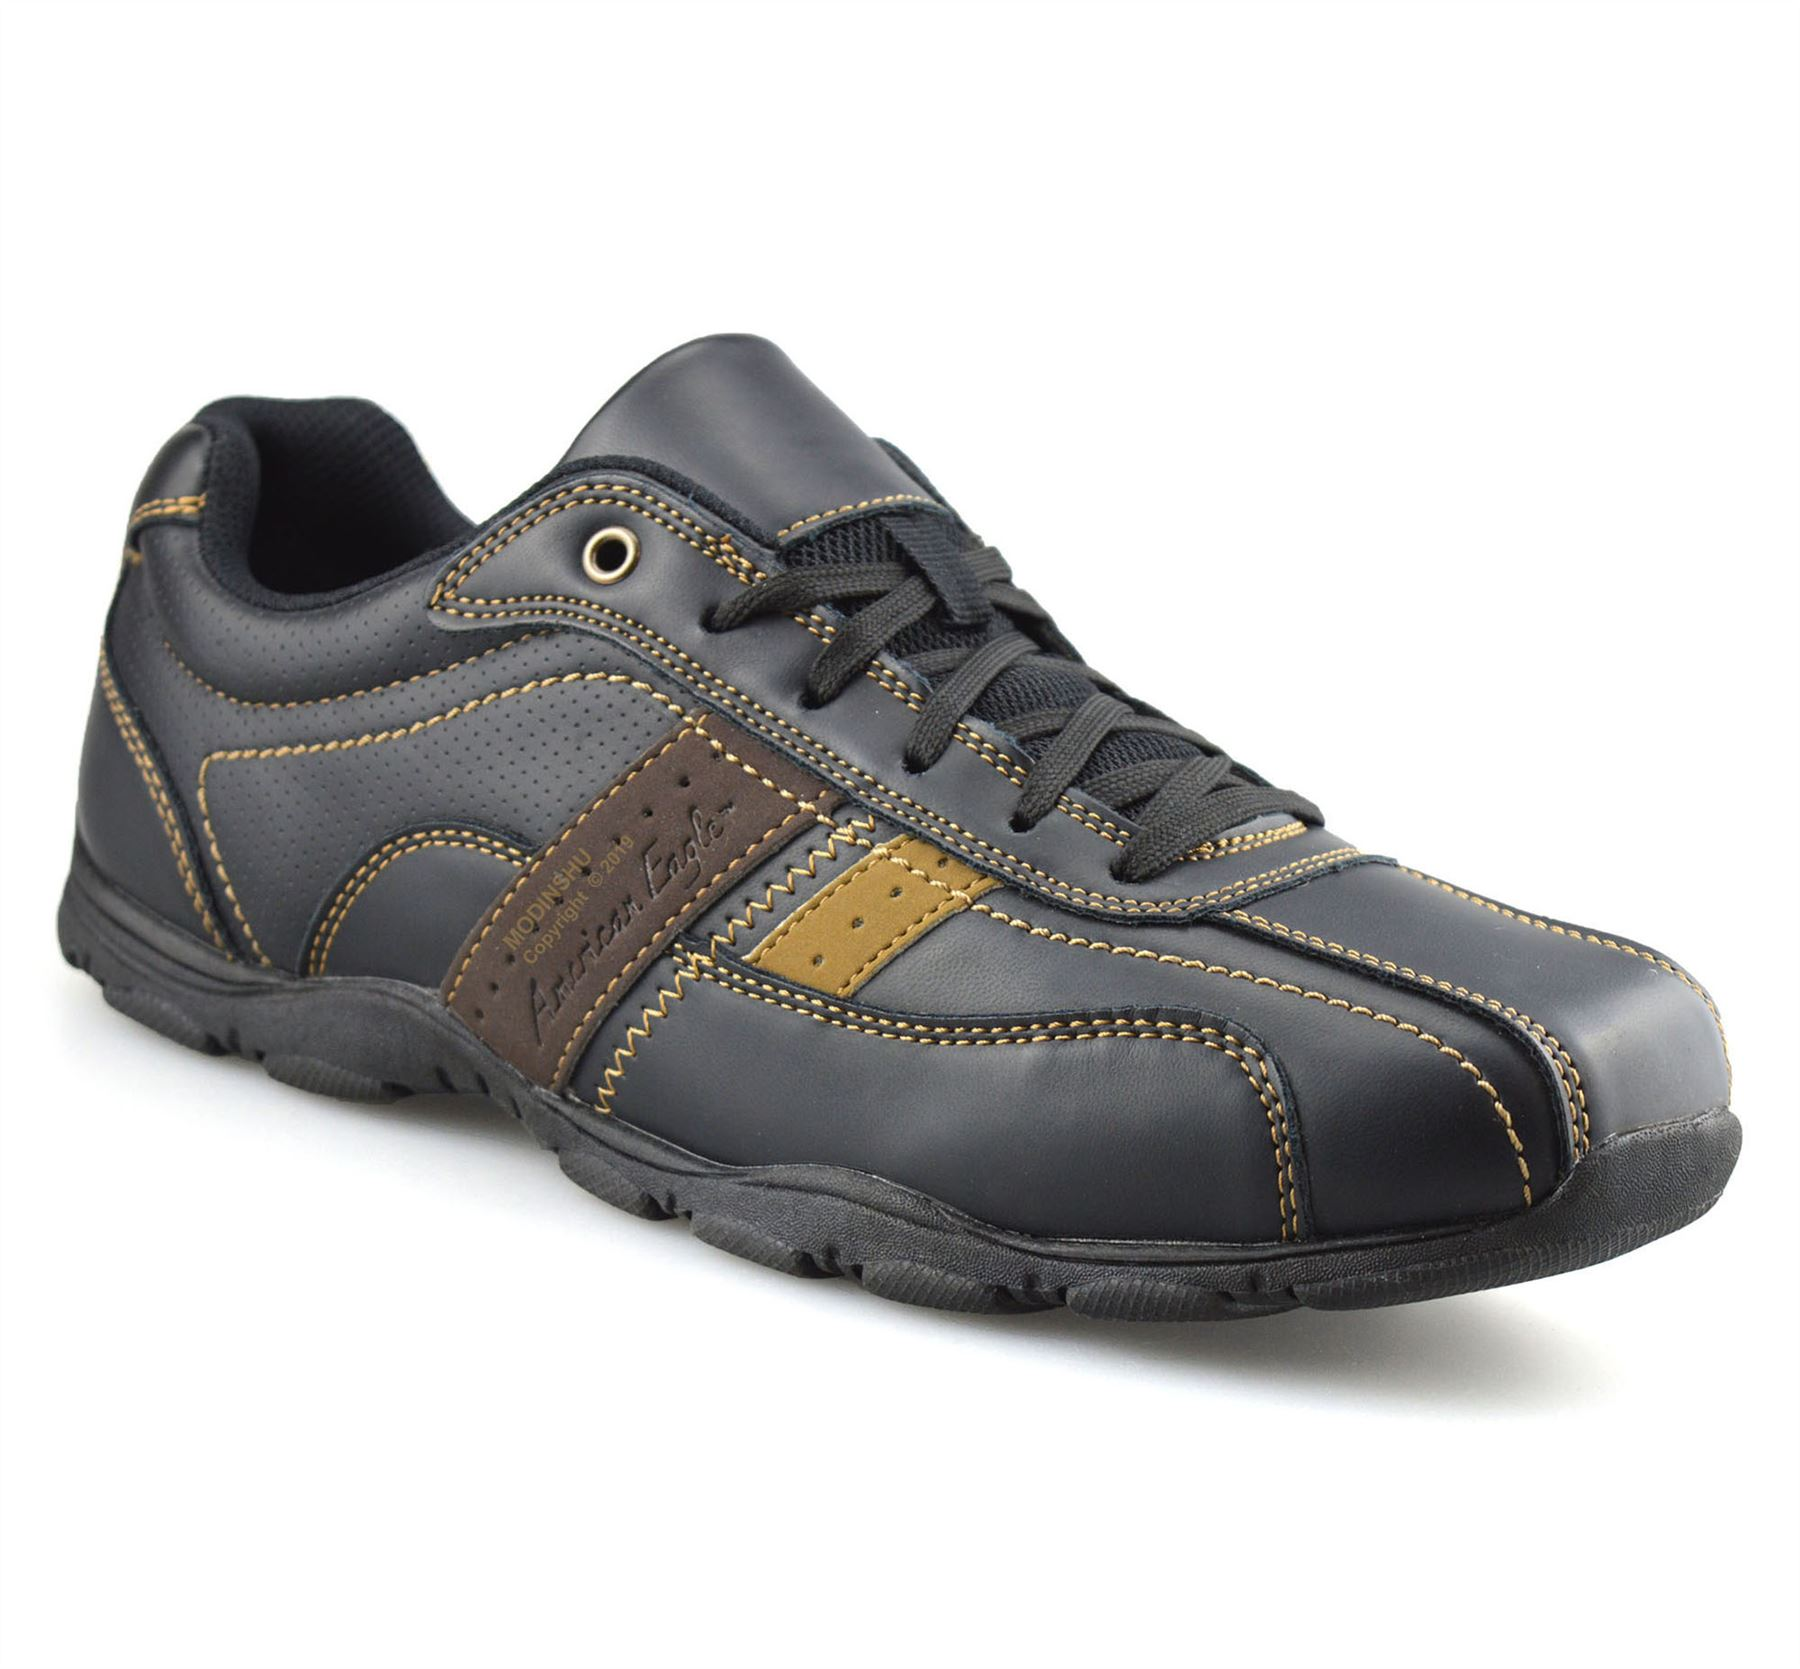 Mens-Casual-Memory-Foam-Walking-Hiking-Moccasin-Driving-Boat-Trainers-Shoes-Size thumbnail 9